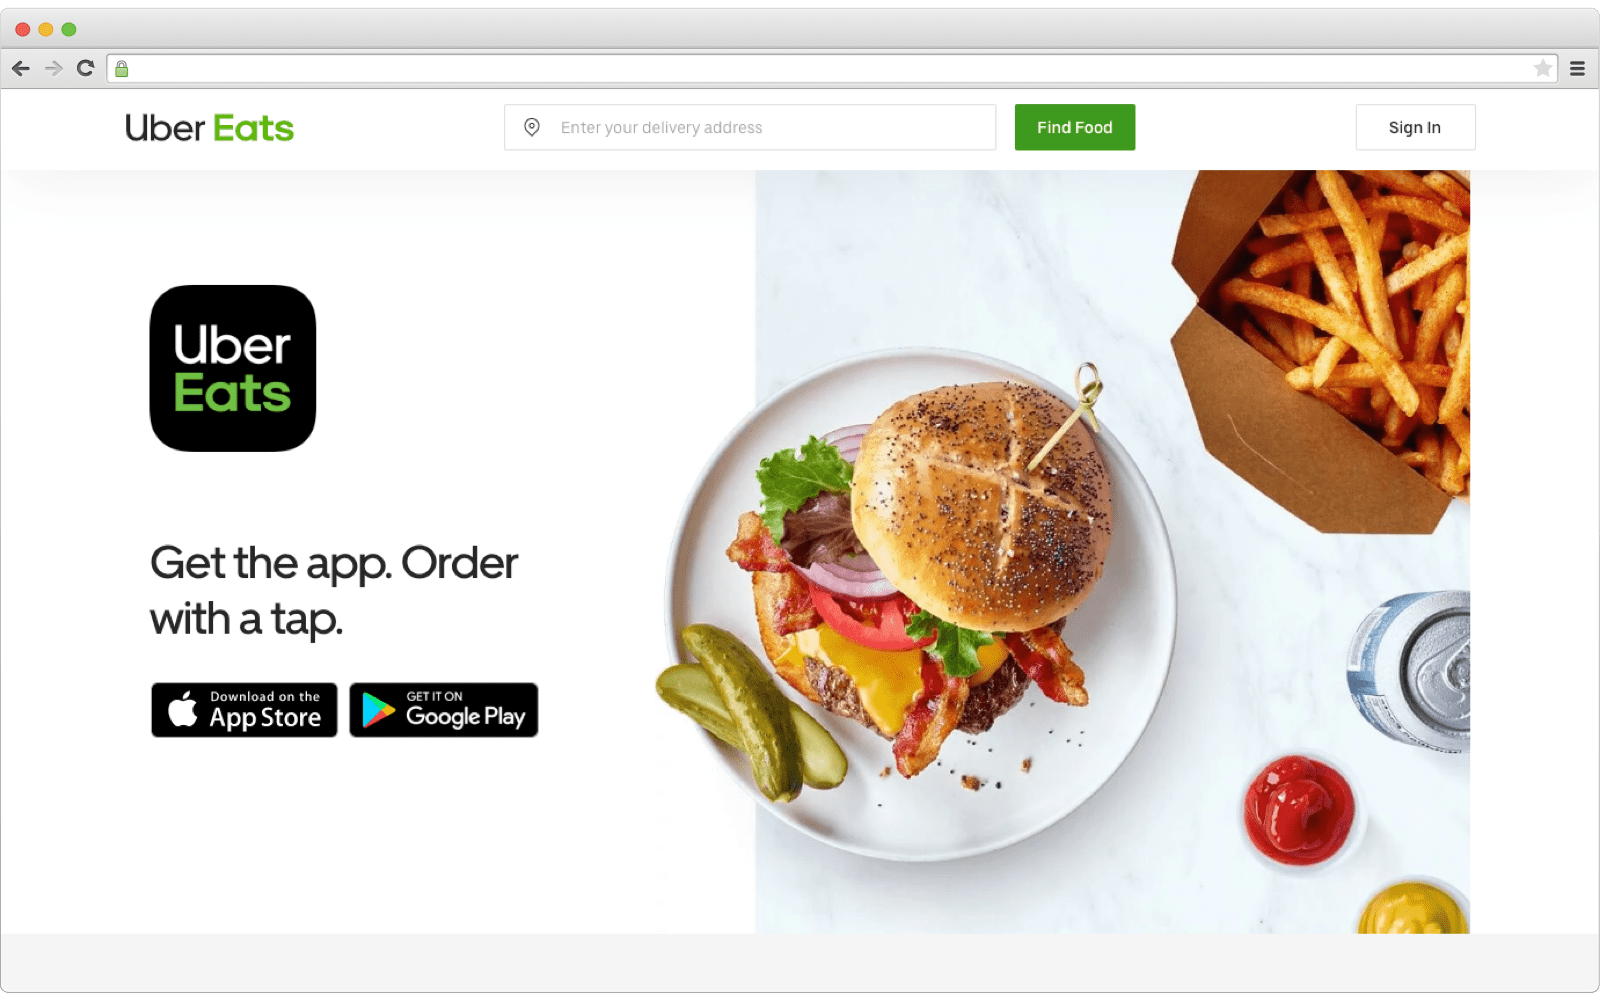 UberEats food delivery marketplace